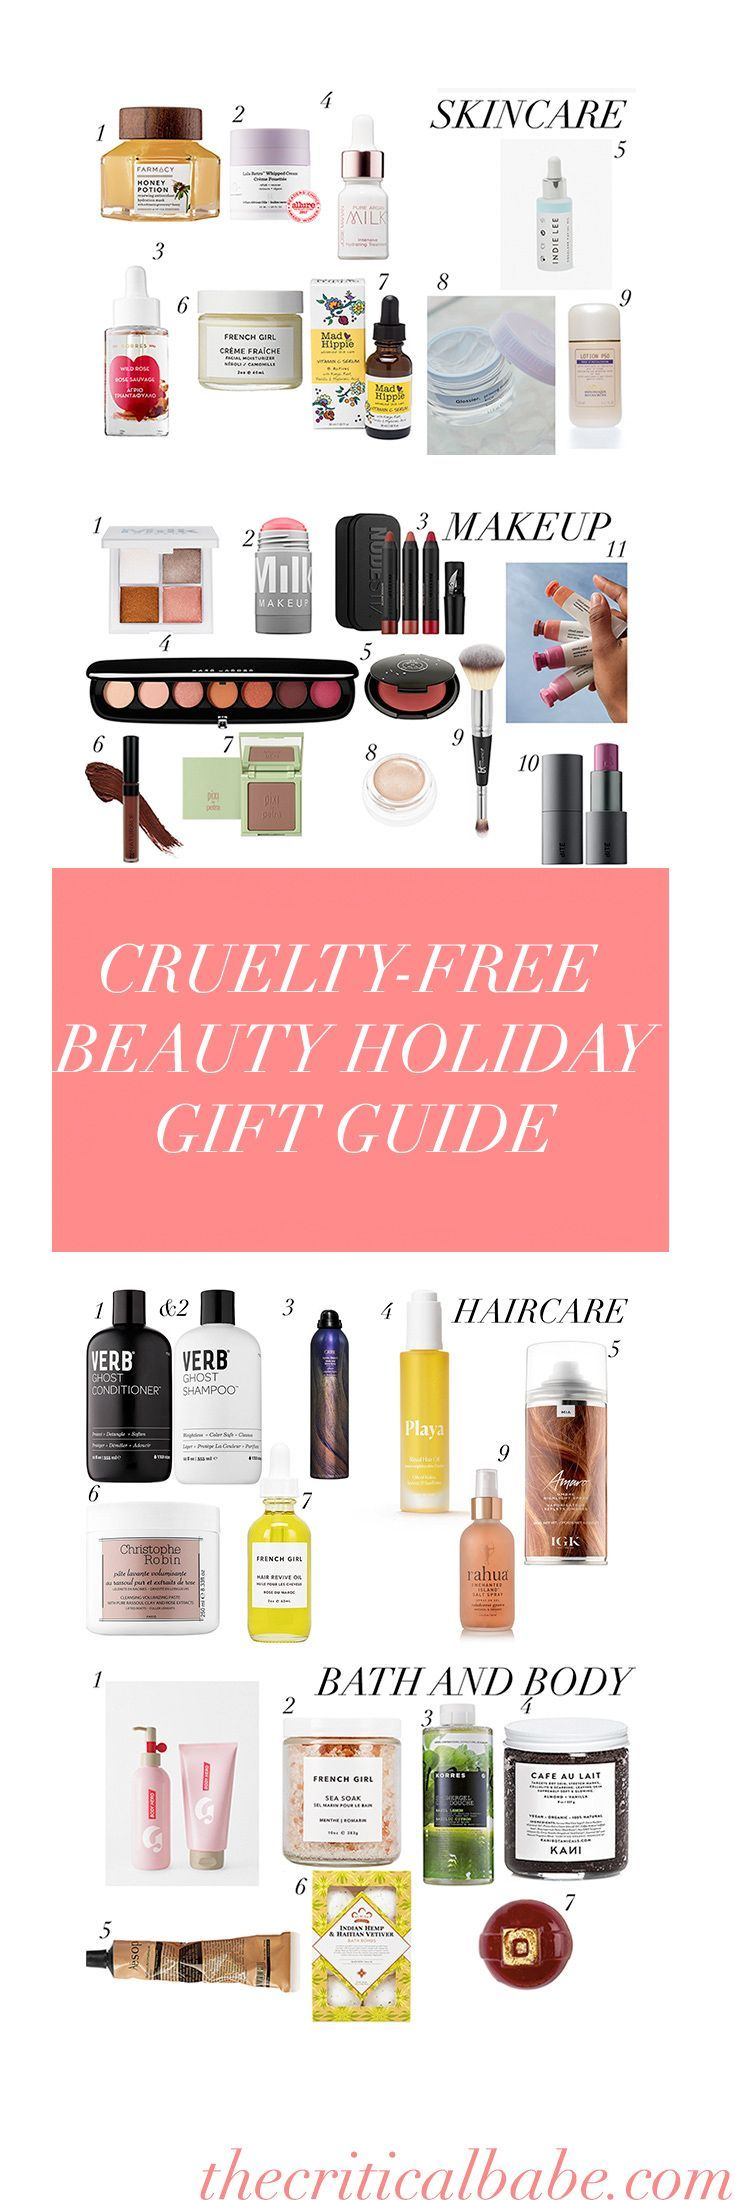 2017 cruelty free beauty gift guide vegan organic and cruelty free products that